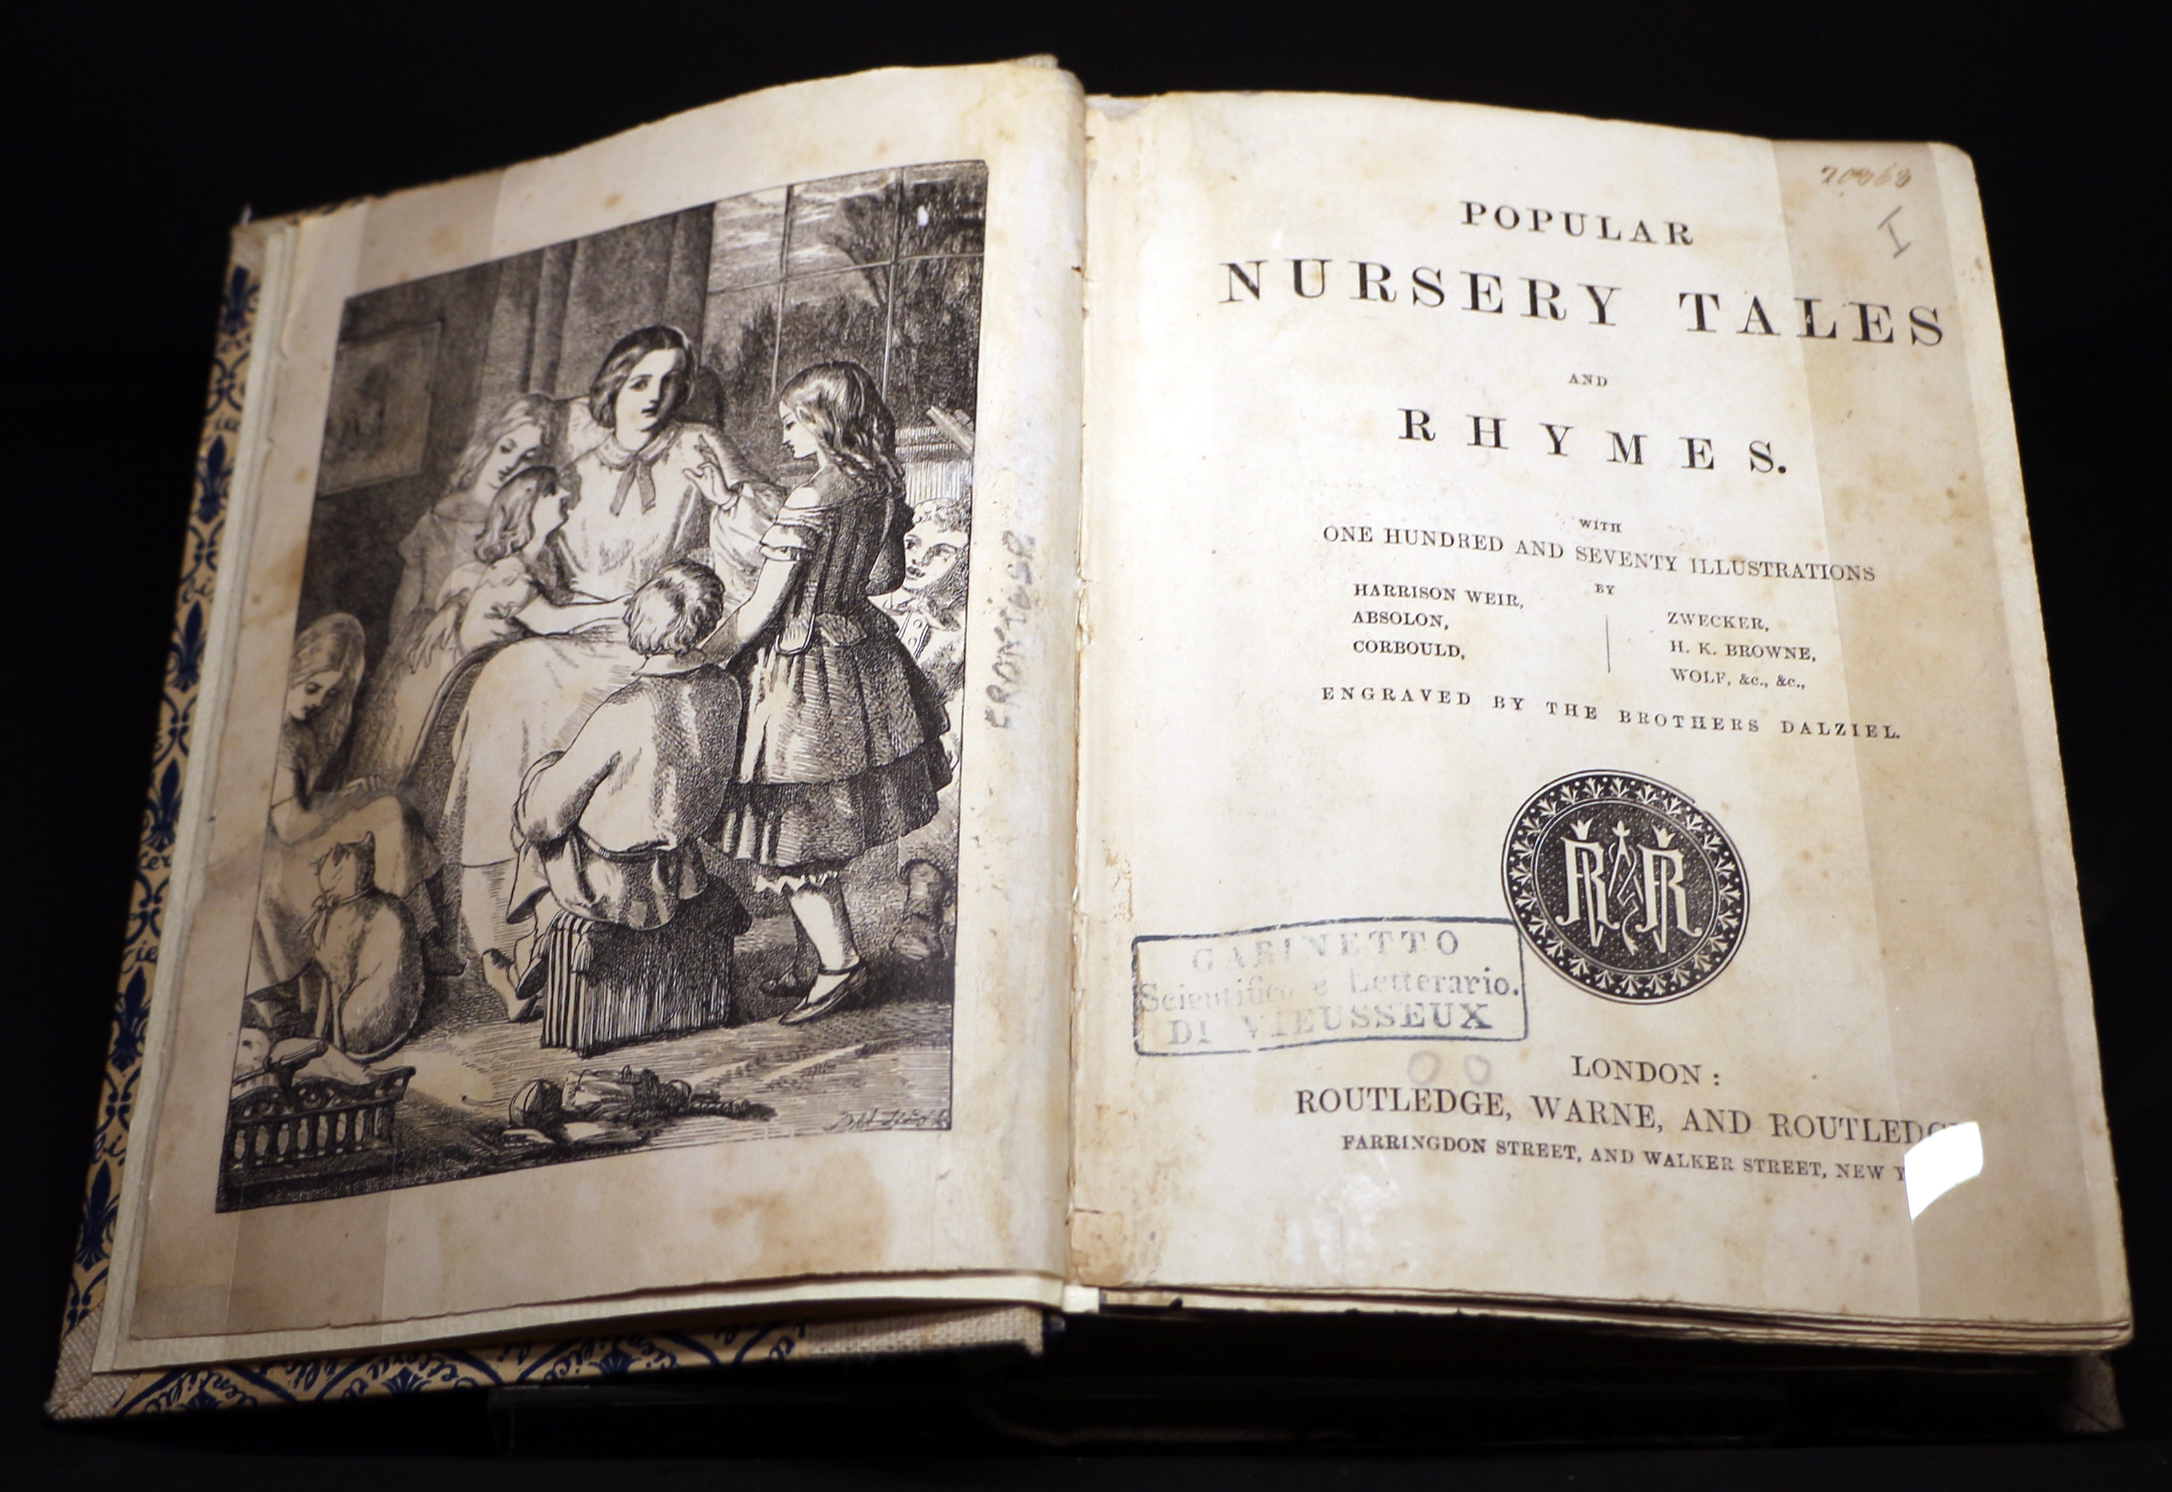 Popular nursery tales and rhymes